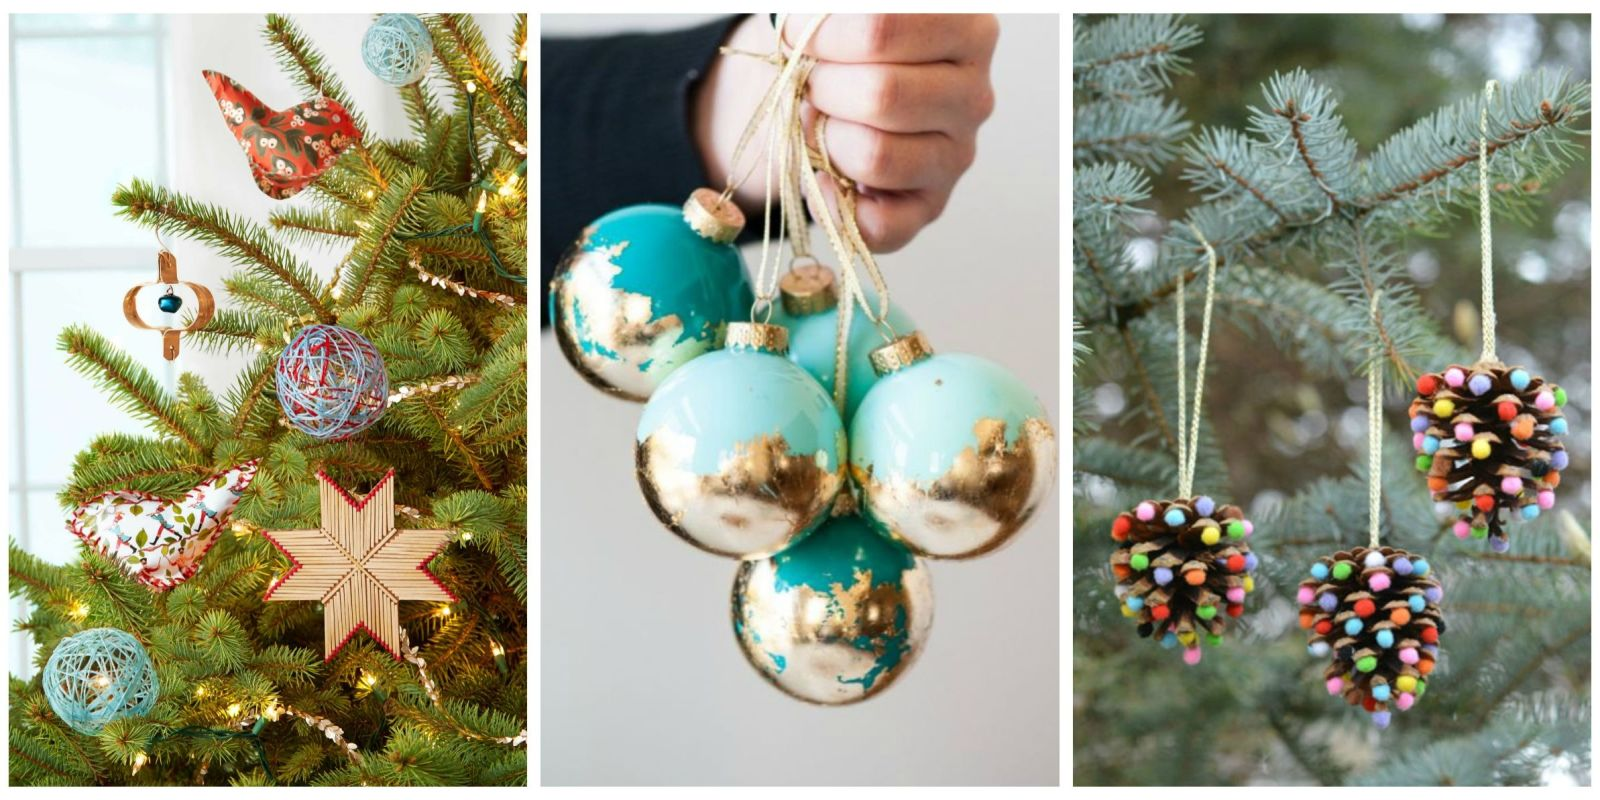 32 homemade diy christmas ornament craft ideas how to for Homemade tree decorations